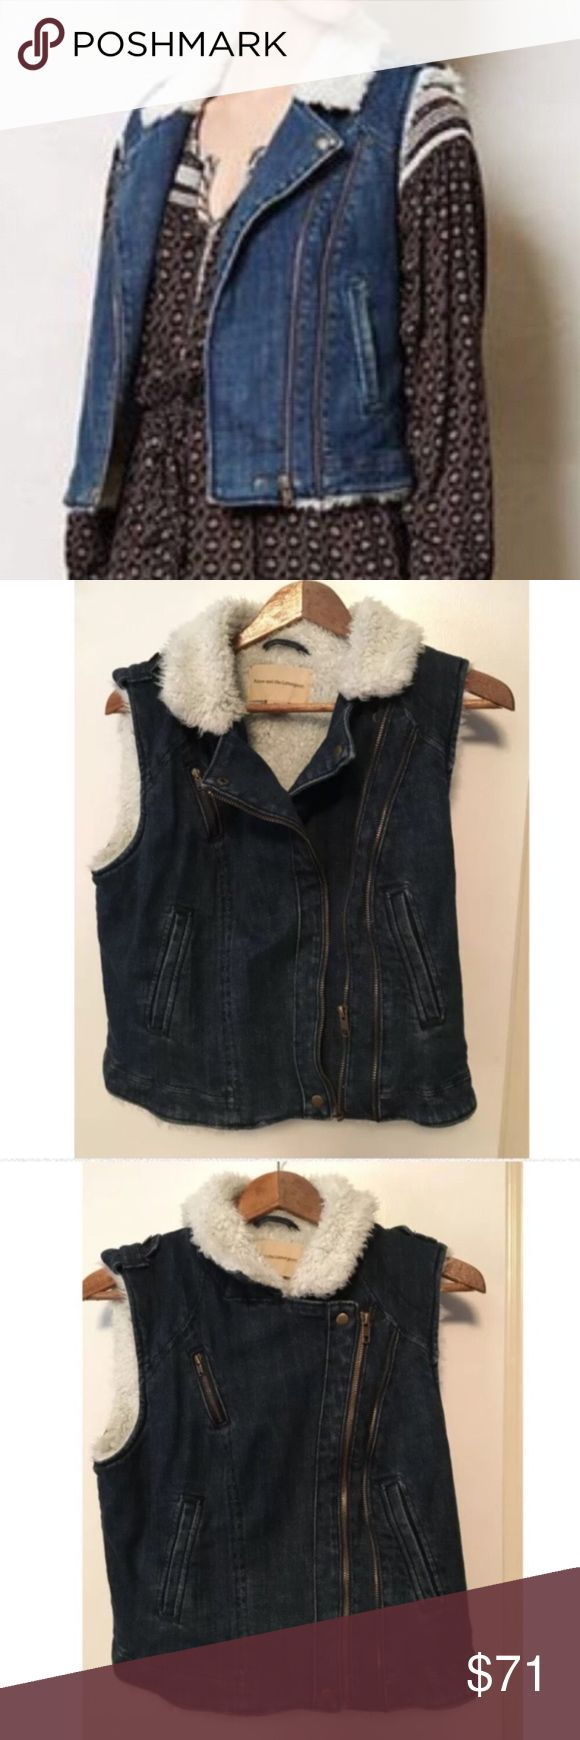 Anthropologie Brand Shearling Look Moto Denim Vest Anthropologie Brand! Shearling look! ⚜️I love receiving offers through the offer button!⚜️ Good condition, as seen in pictures! Fast same or next day shipping!📨 Open to offers but I don't negotiate in the comments so please use the offer button😊 Anthropologie Jackets & Coats